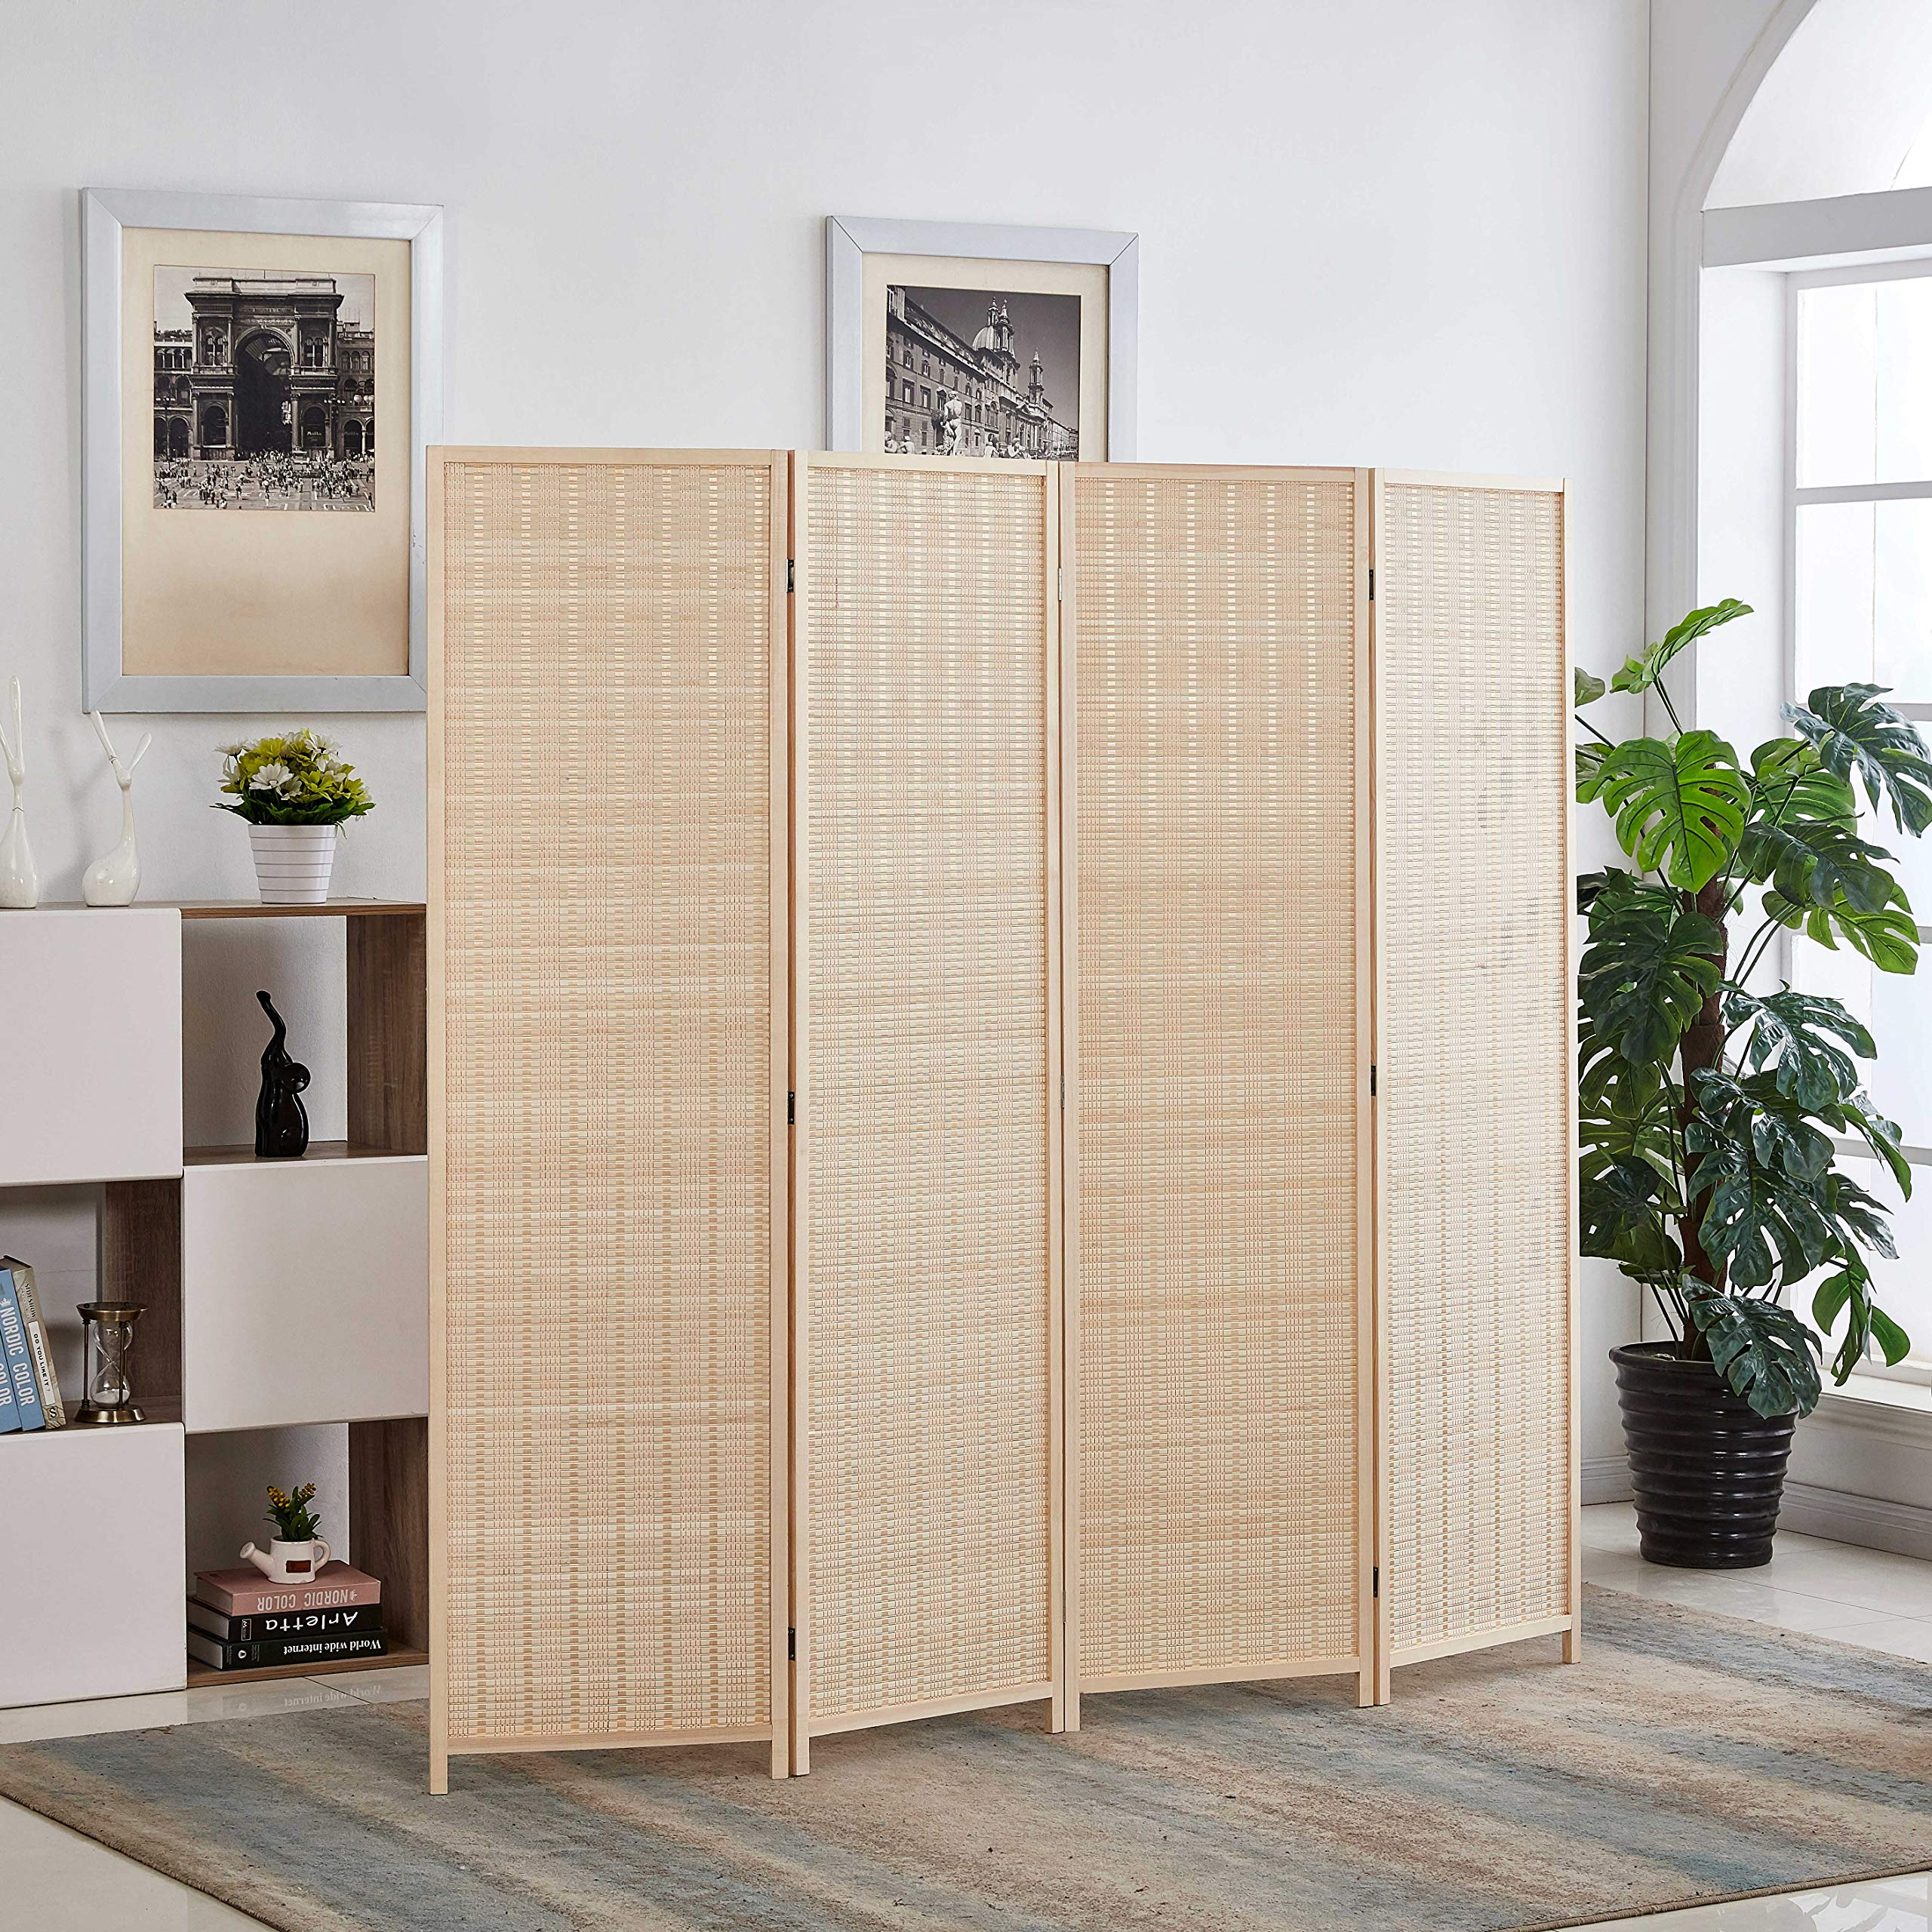 Rose Home Fashion 6 ft. Tall-Extra Wide, Bamboo Room Divider, 4 Panel Room Divider/Screen, Folding Privacy Screen Room Divider,Wall Divider,Room Partitions/Separator/Dividers-Bamboo - 4 Panel by Rose Home Fashion